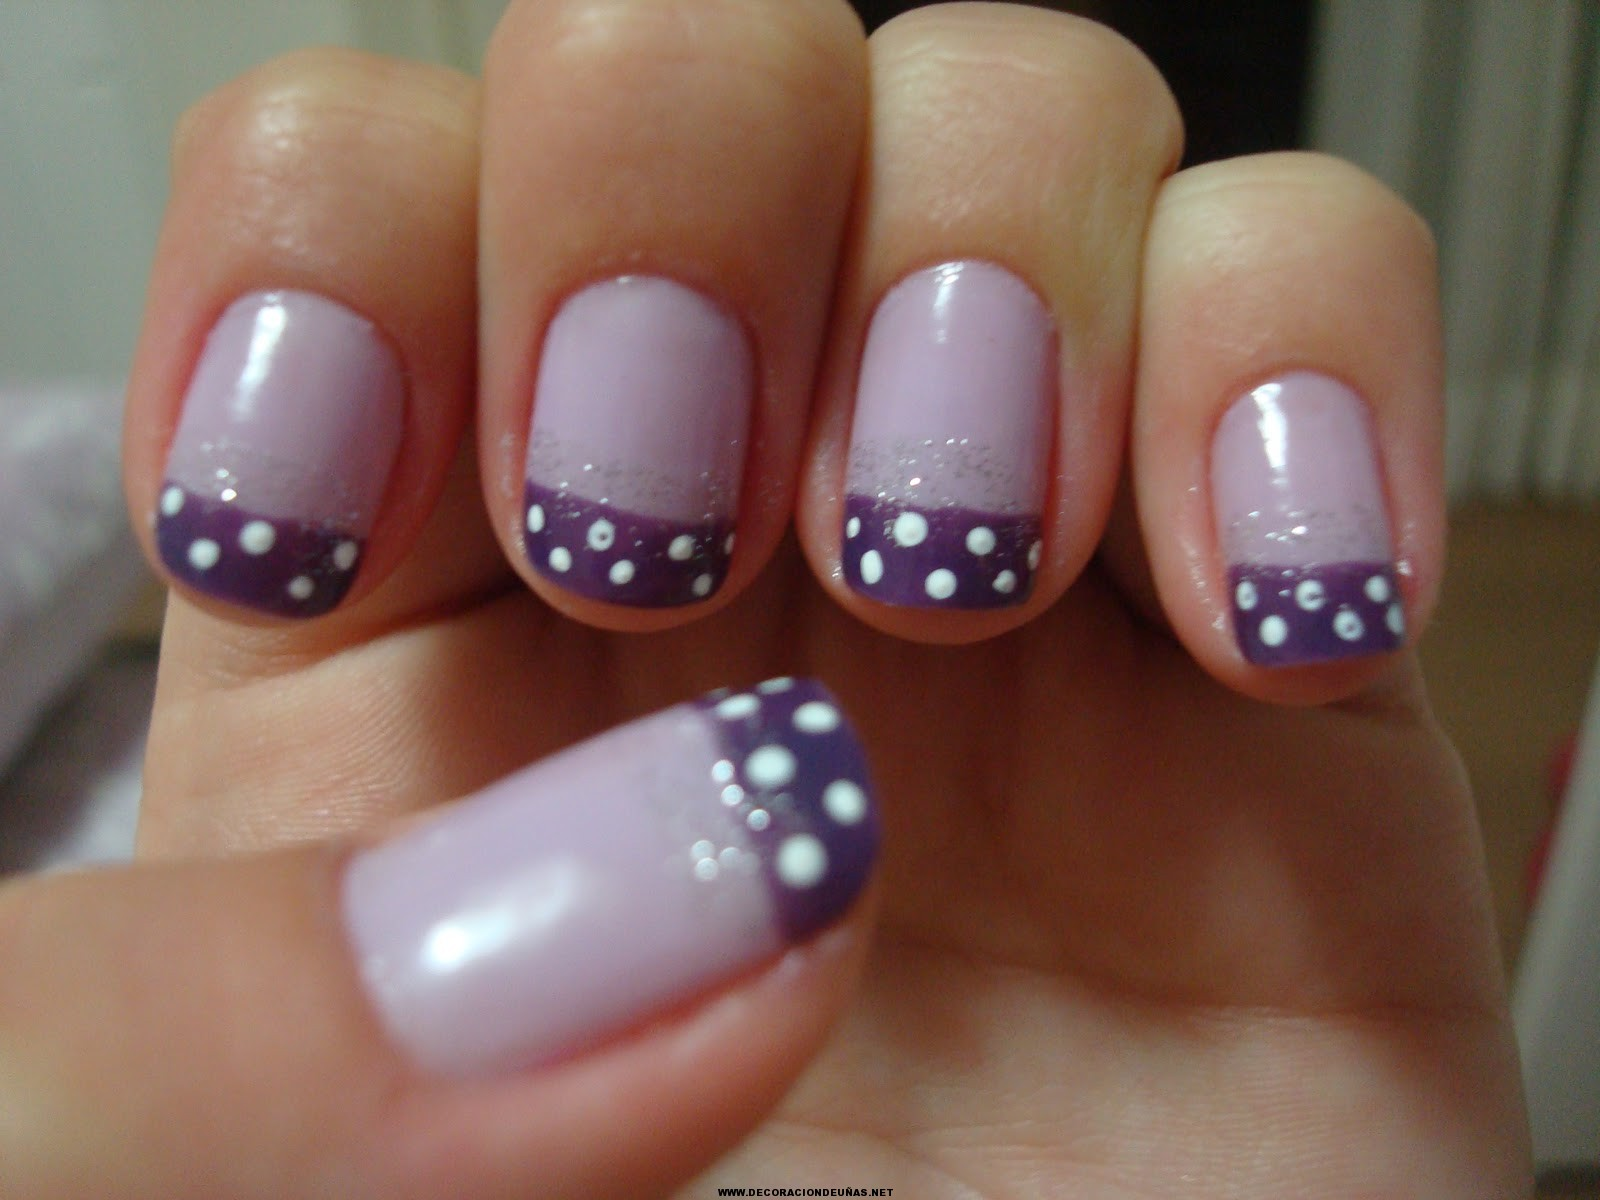 Uñas decoradas lilas